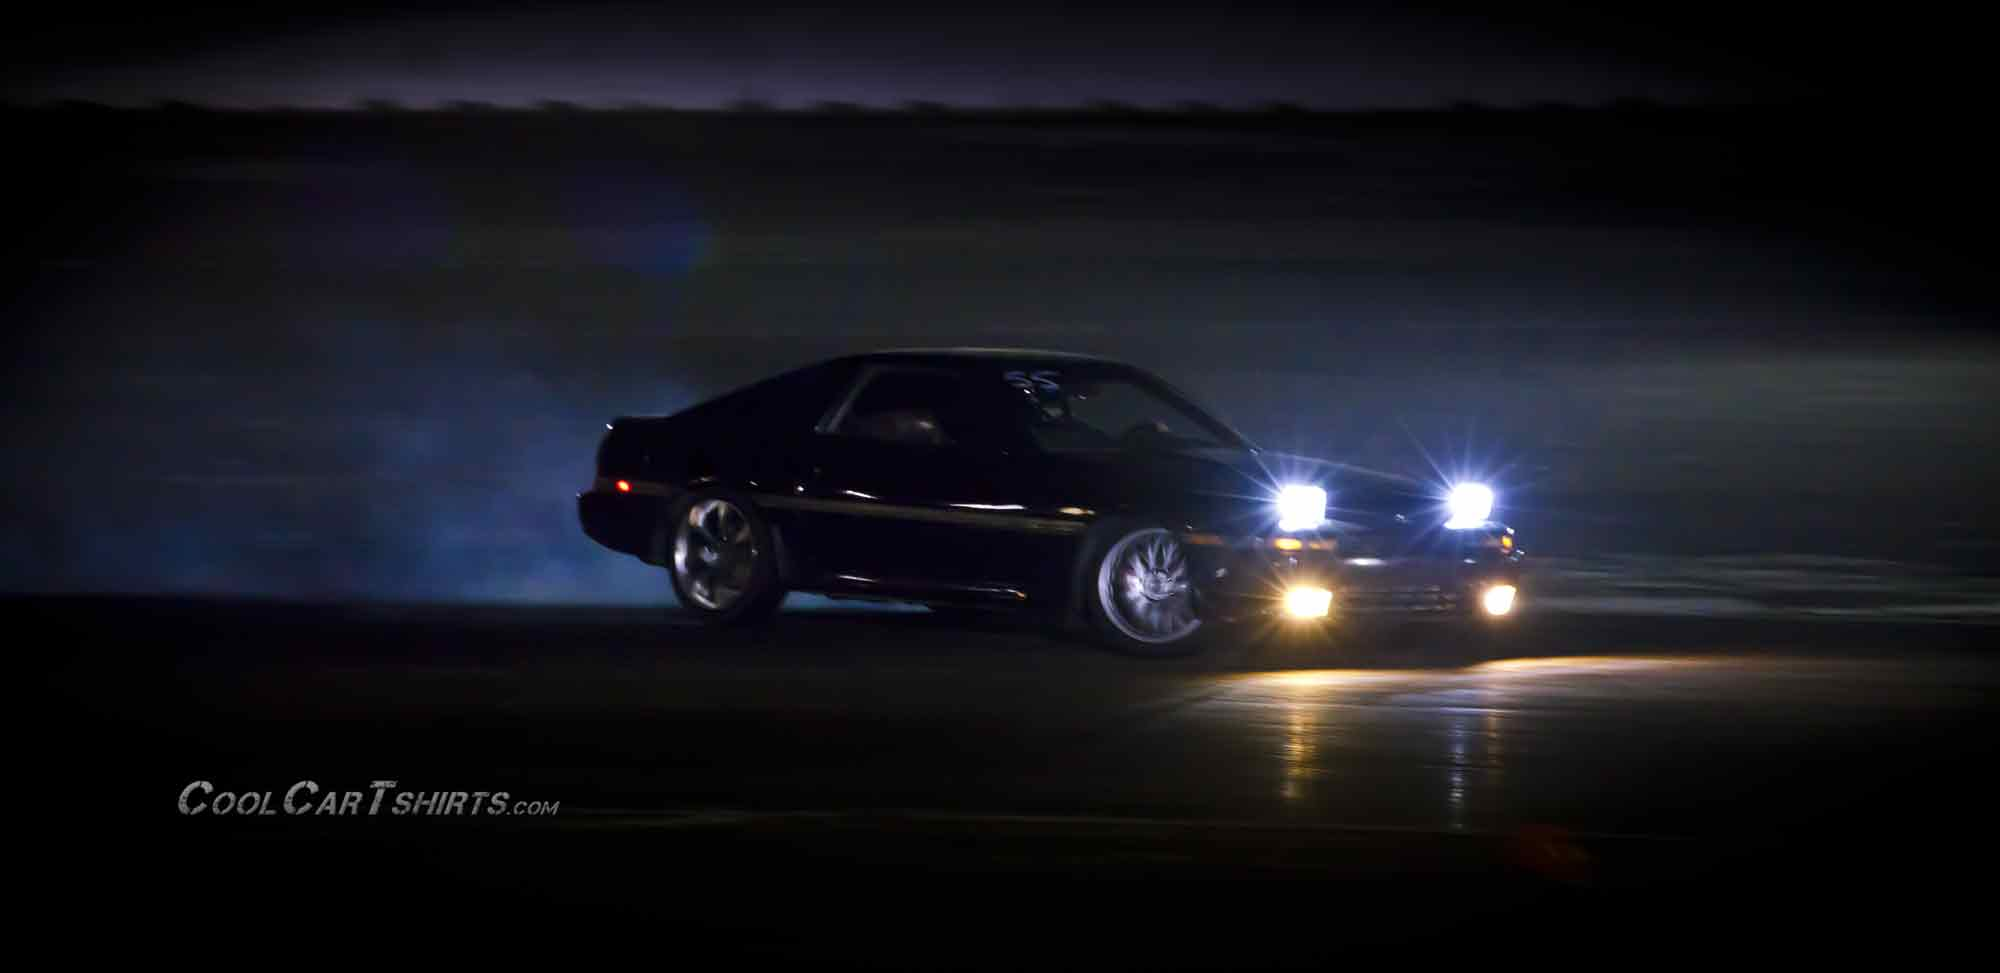 Cool Car Photography Carshow And Amature Drift Night